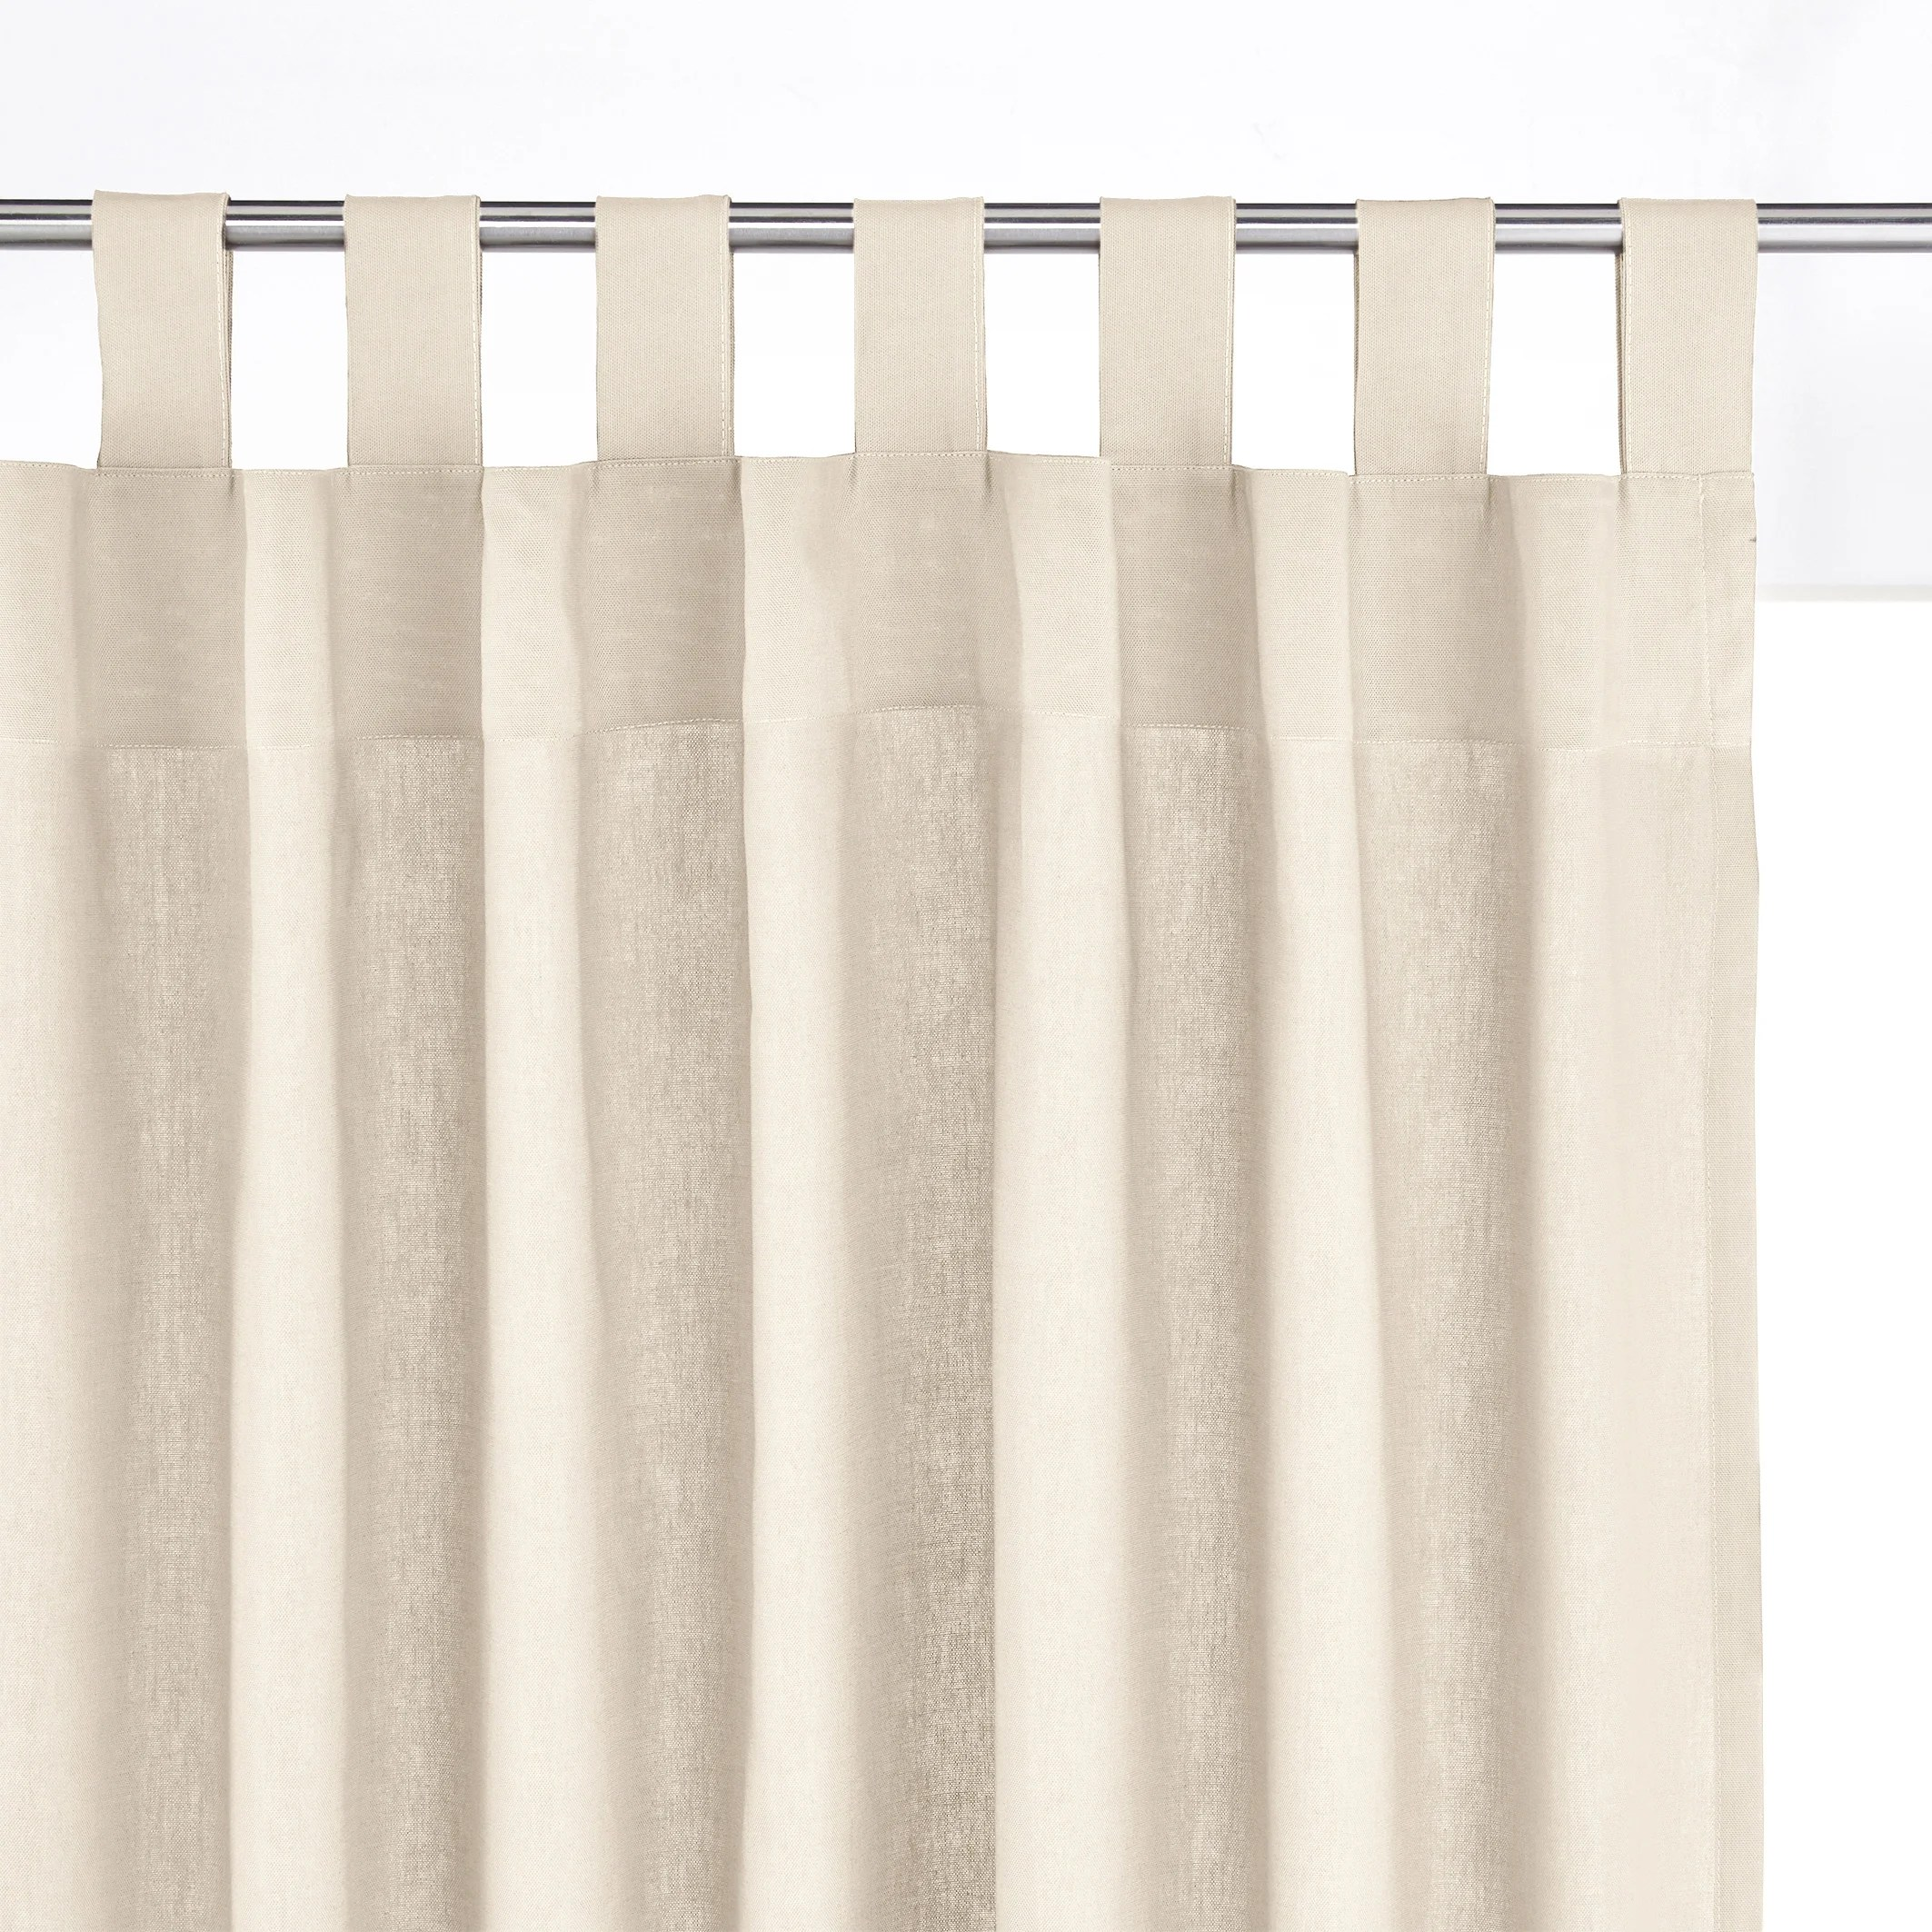 Cortinas La Redoute Cotton Tab Top Single Curtain La Redoute Interieurs | La